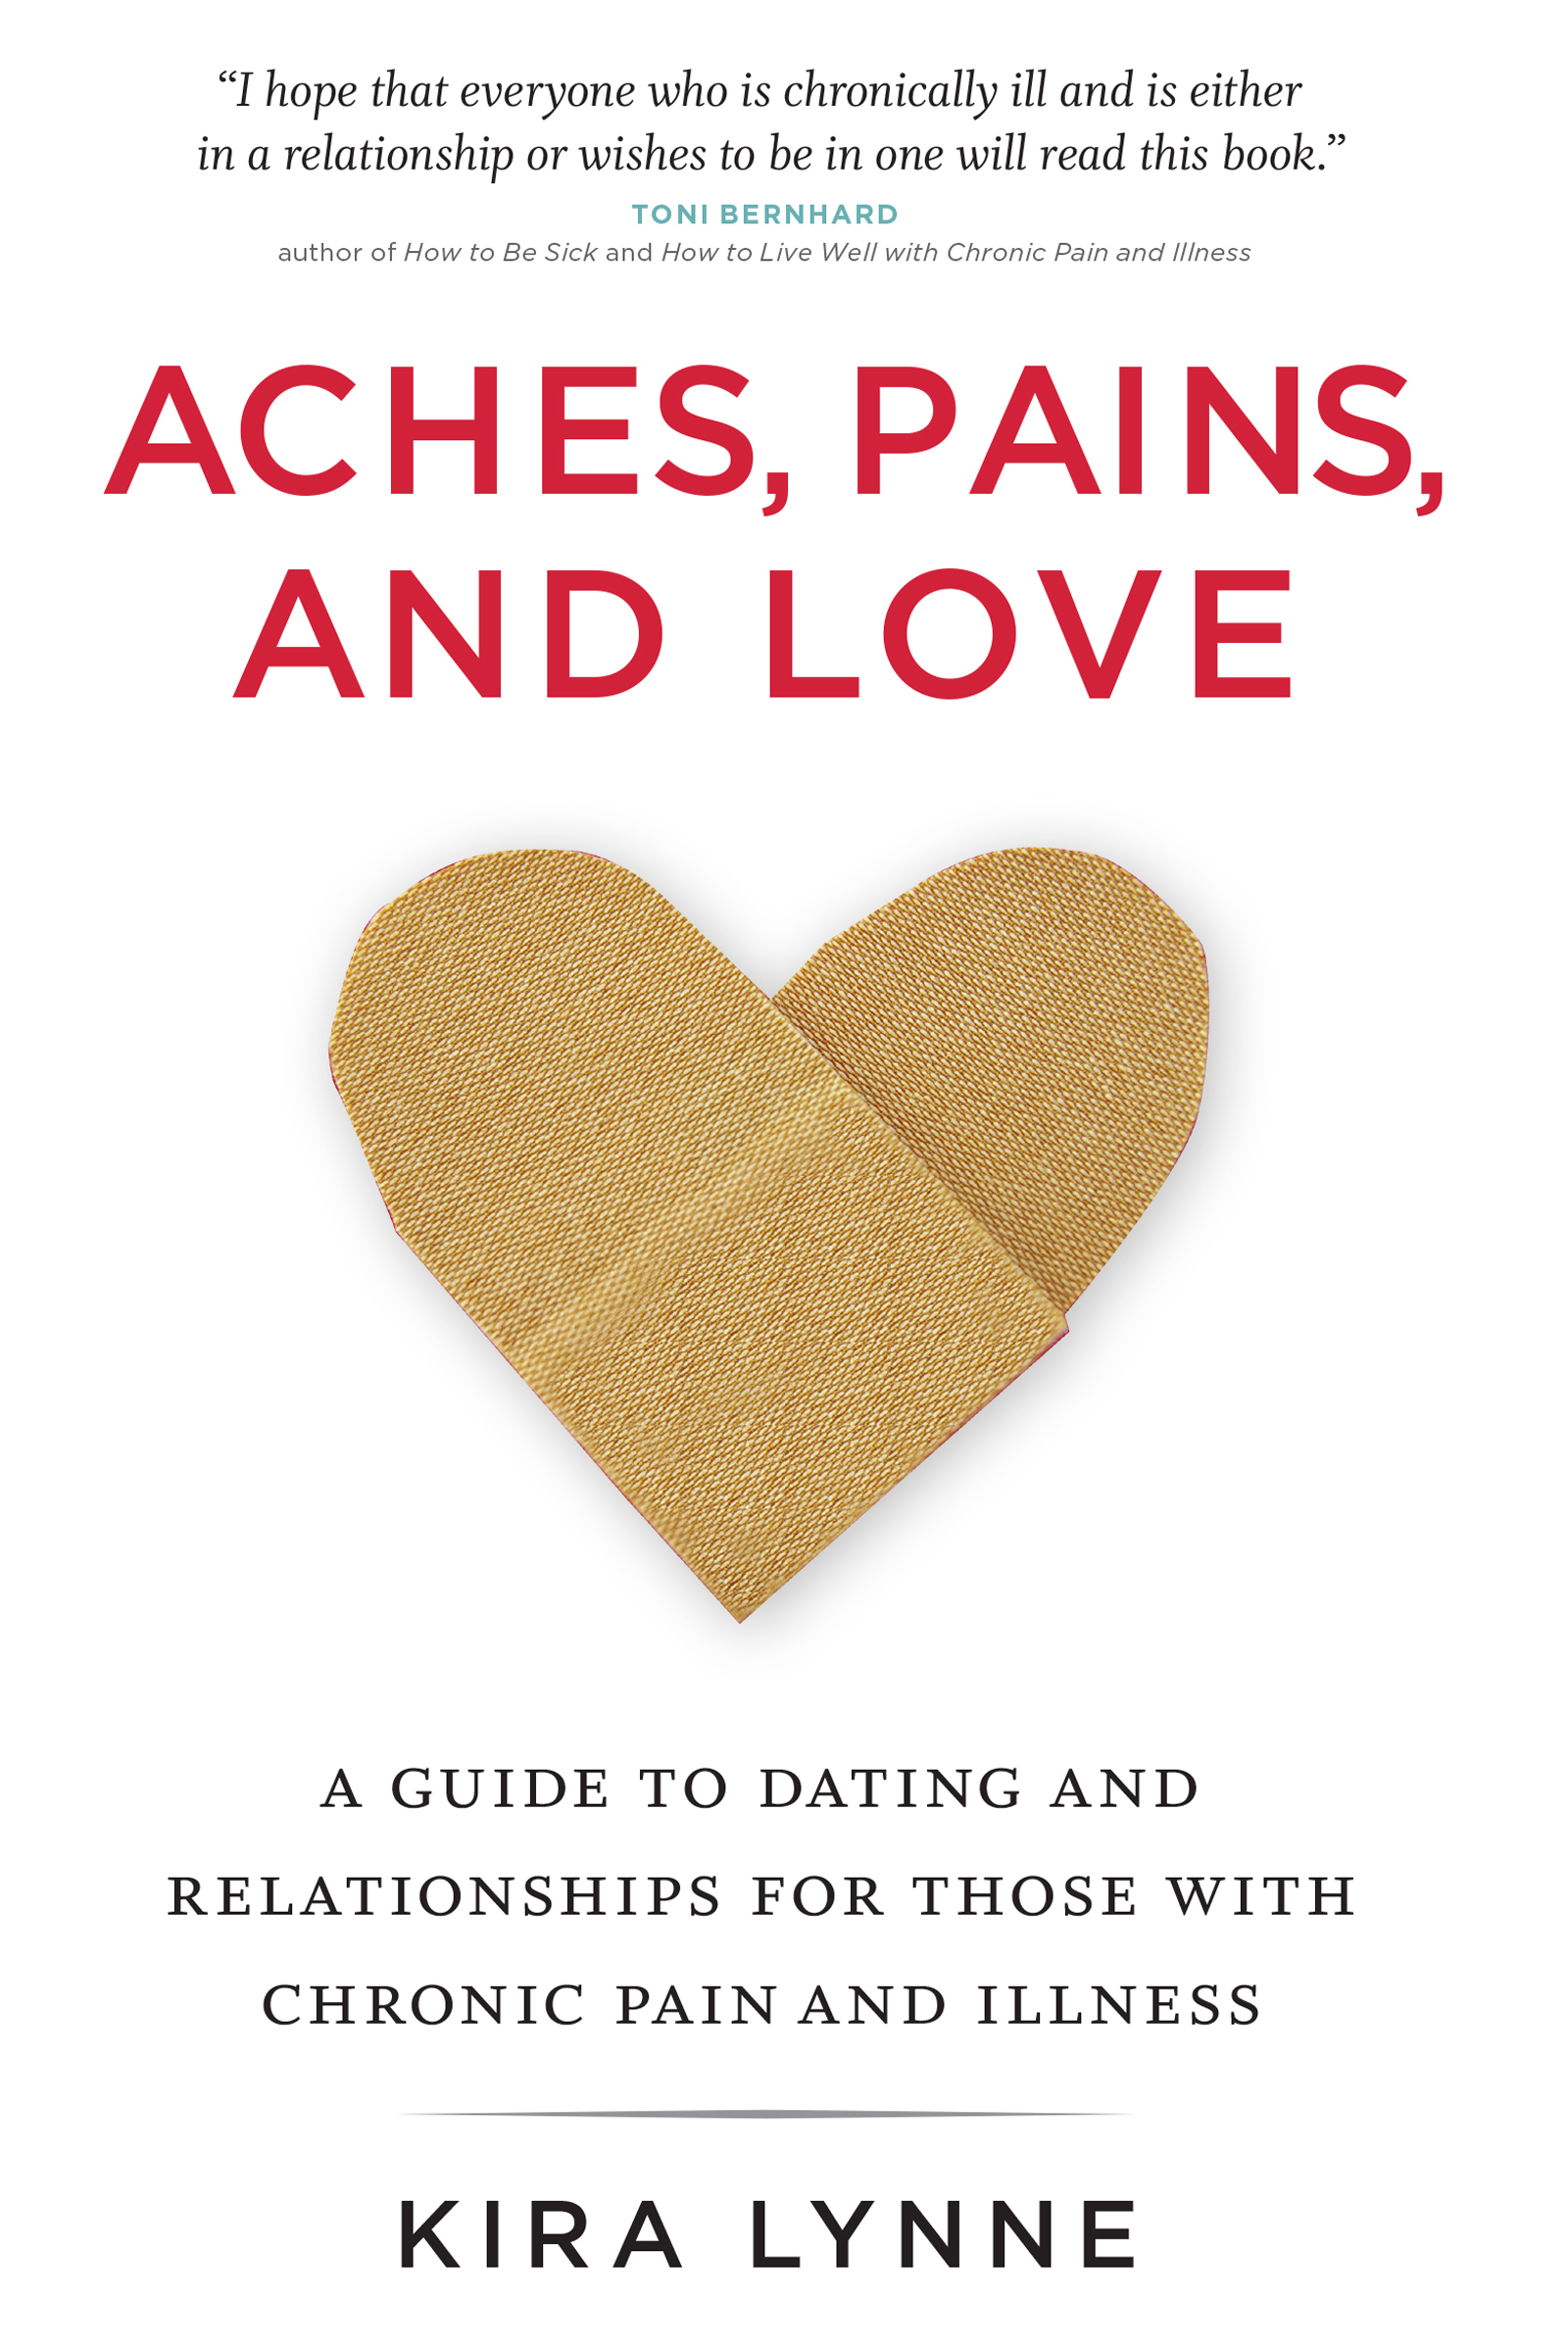 Aches, Pains, and Love Kira Lynne